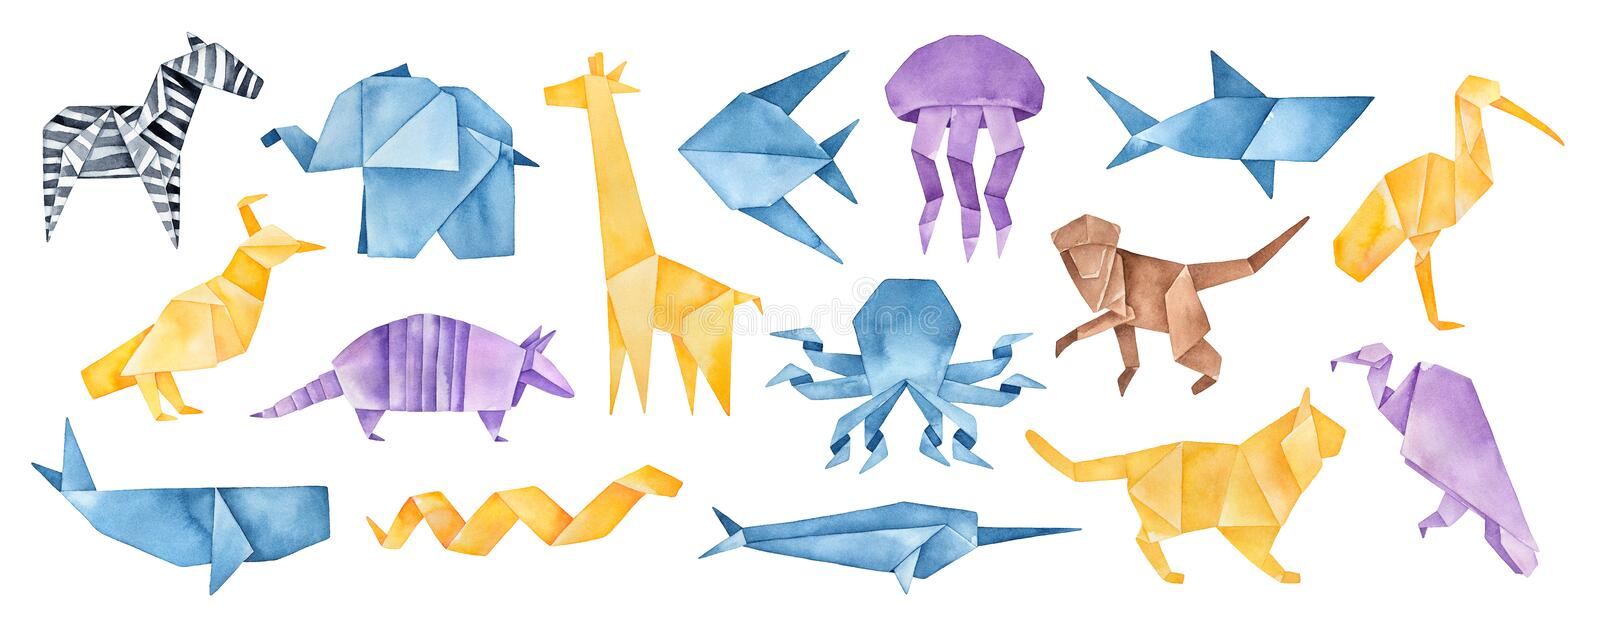 Big illustration collection of folded Origami Animals. Blue, yellow, violet, brown colors. Hand painted watercolour graphic drawing on white background, cut out stock illustration